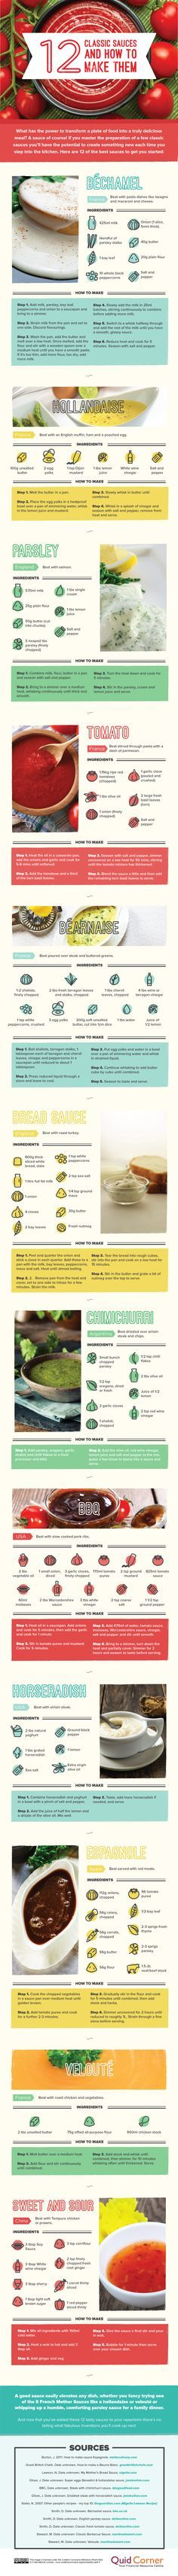 12 simple recipes for basic sauces in one brilliant infographic